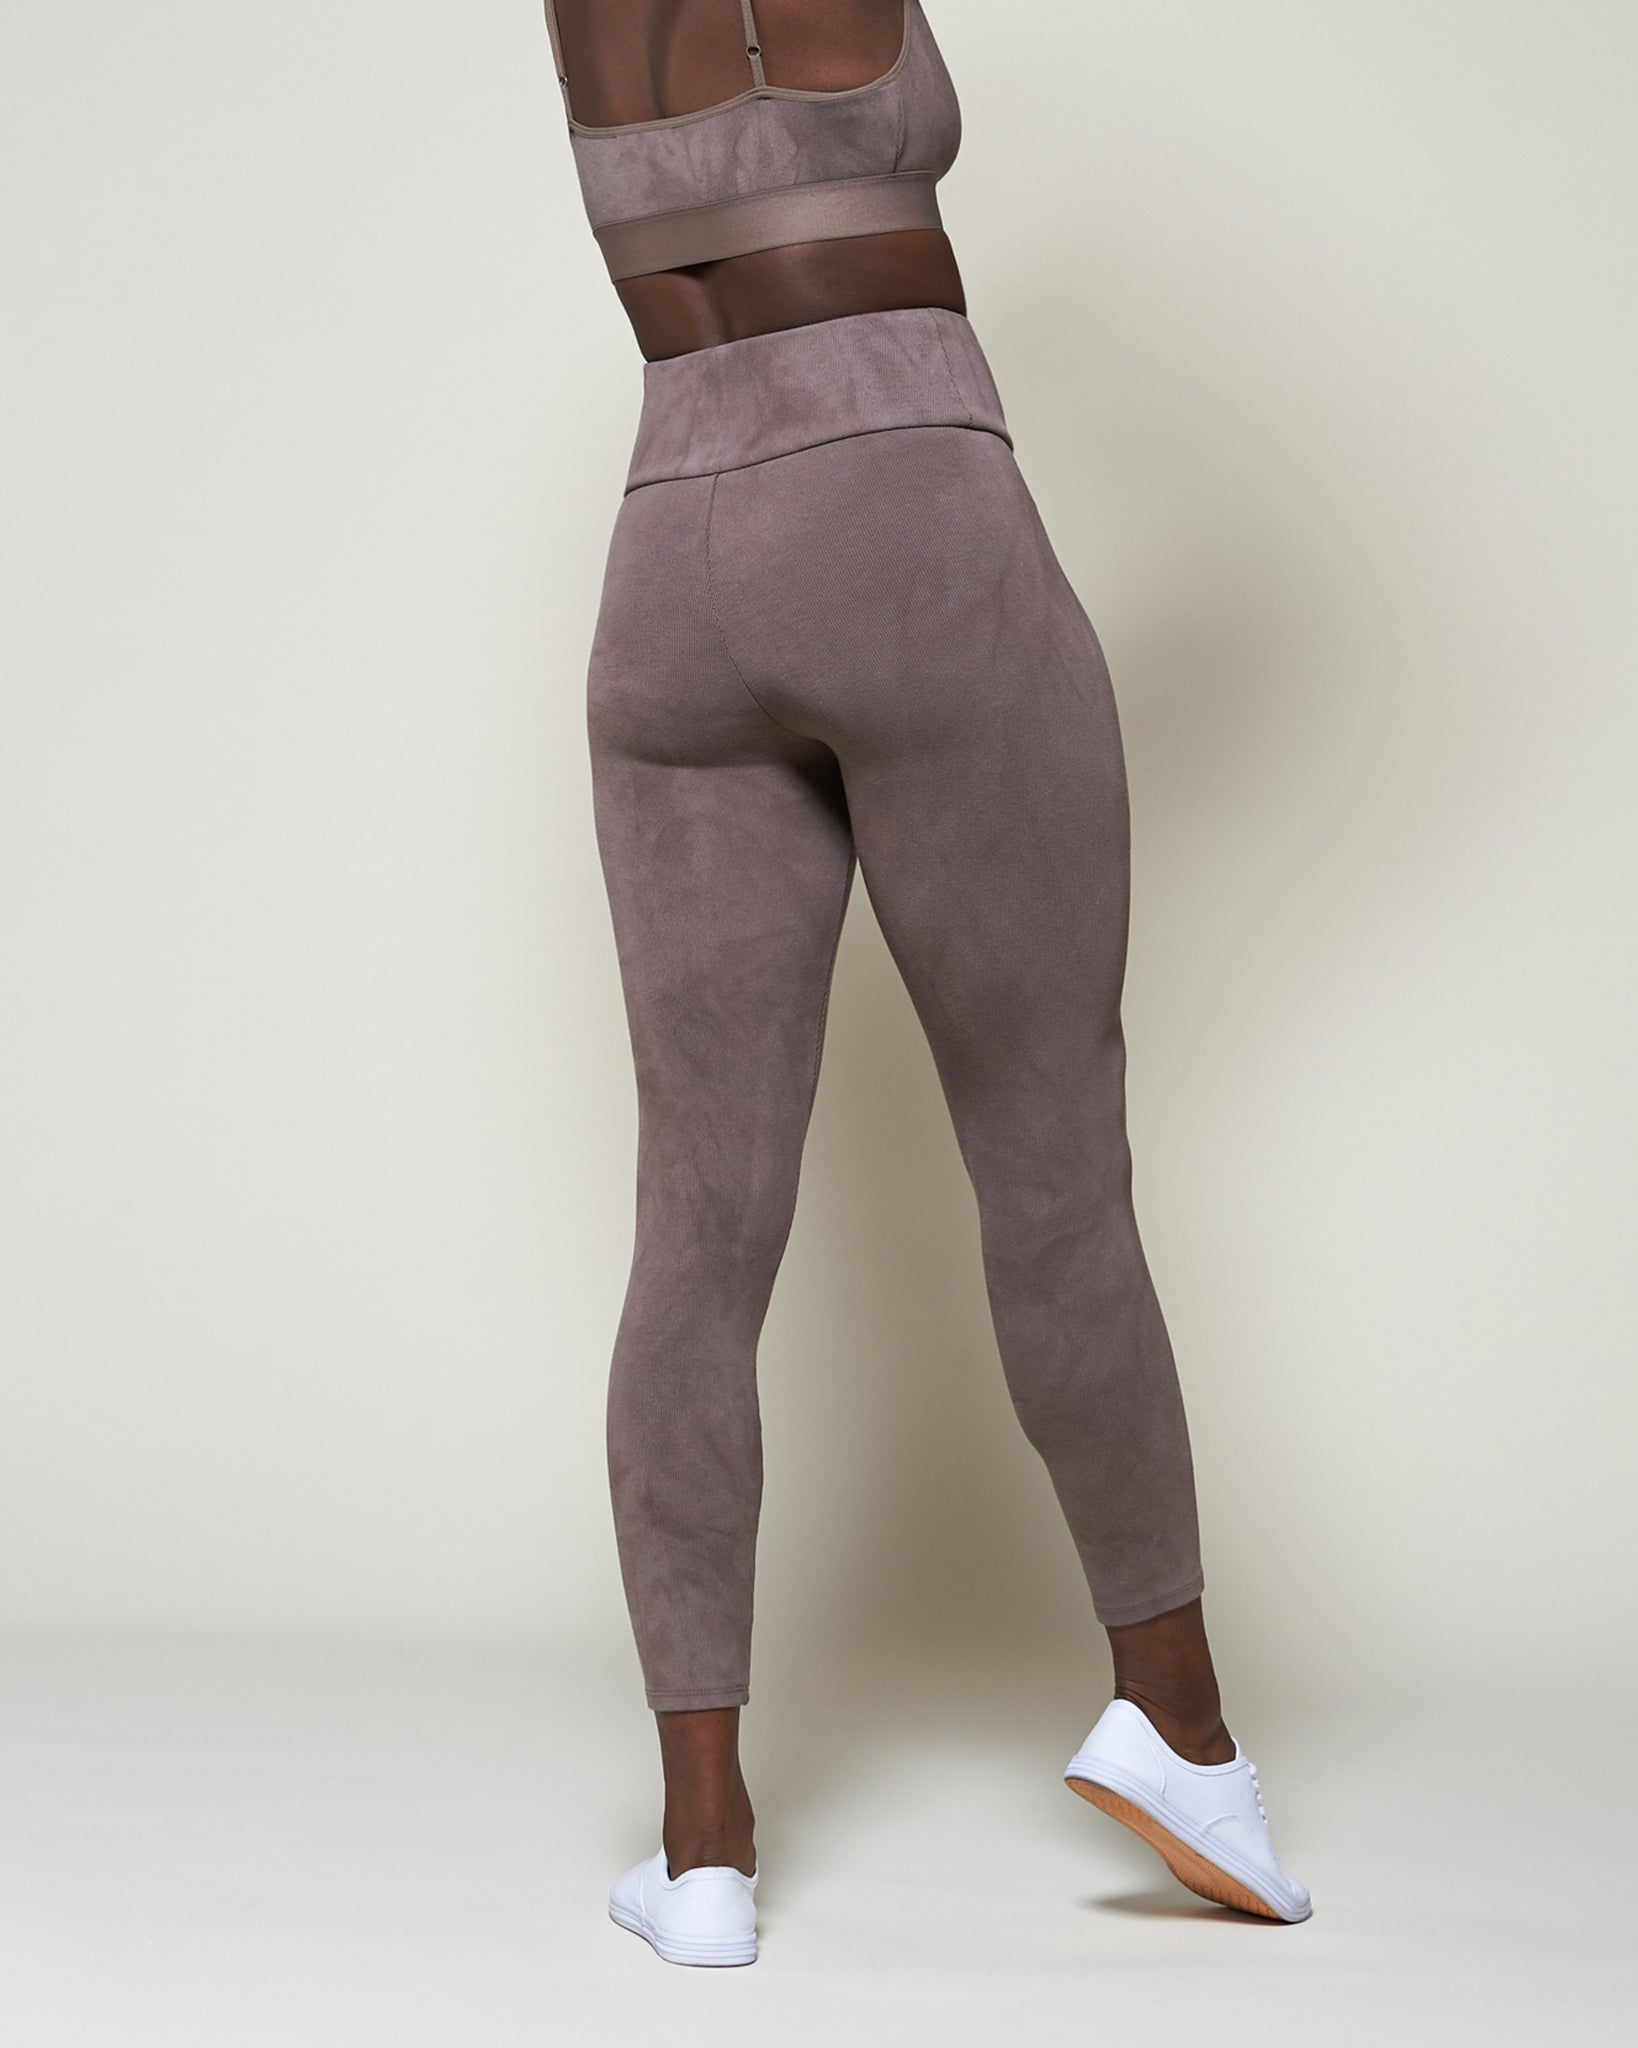 The Thea Leggings